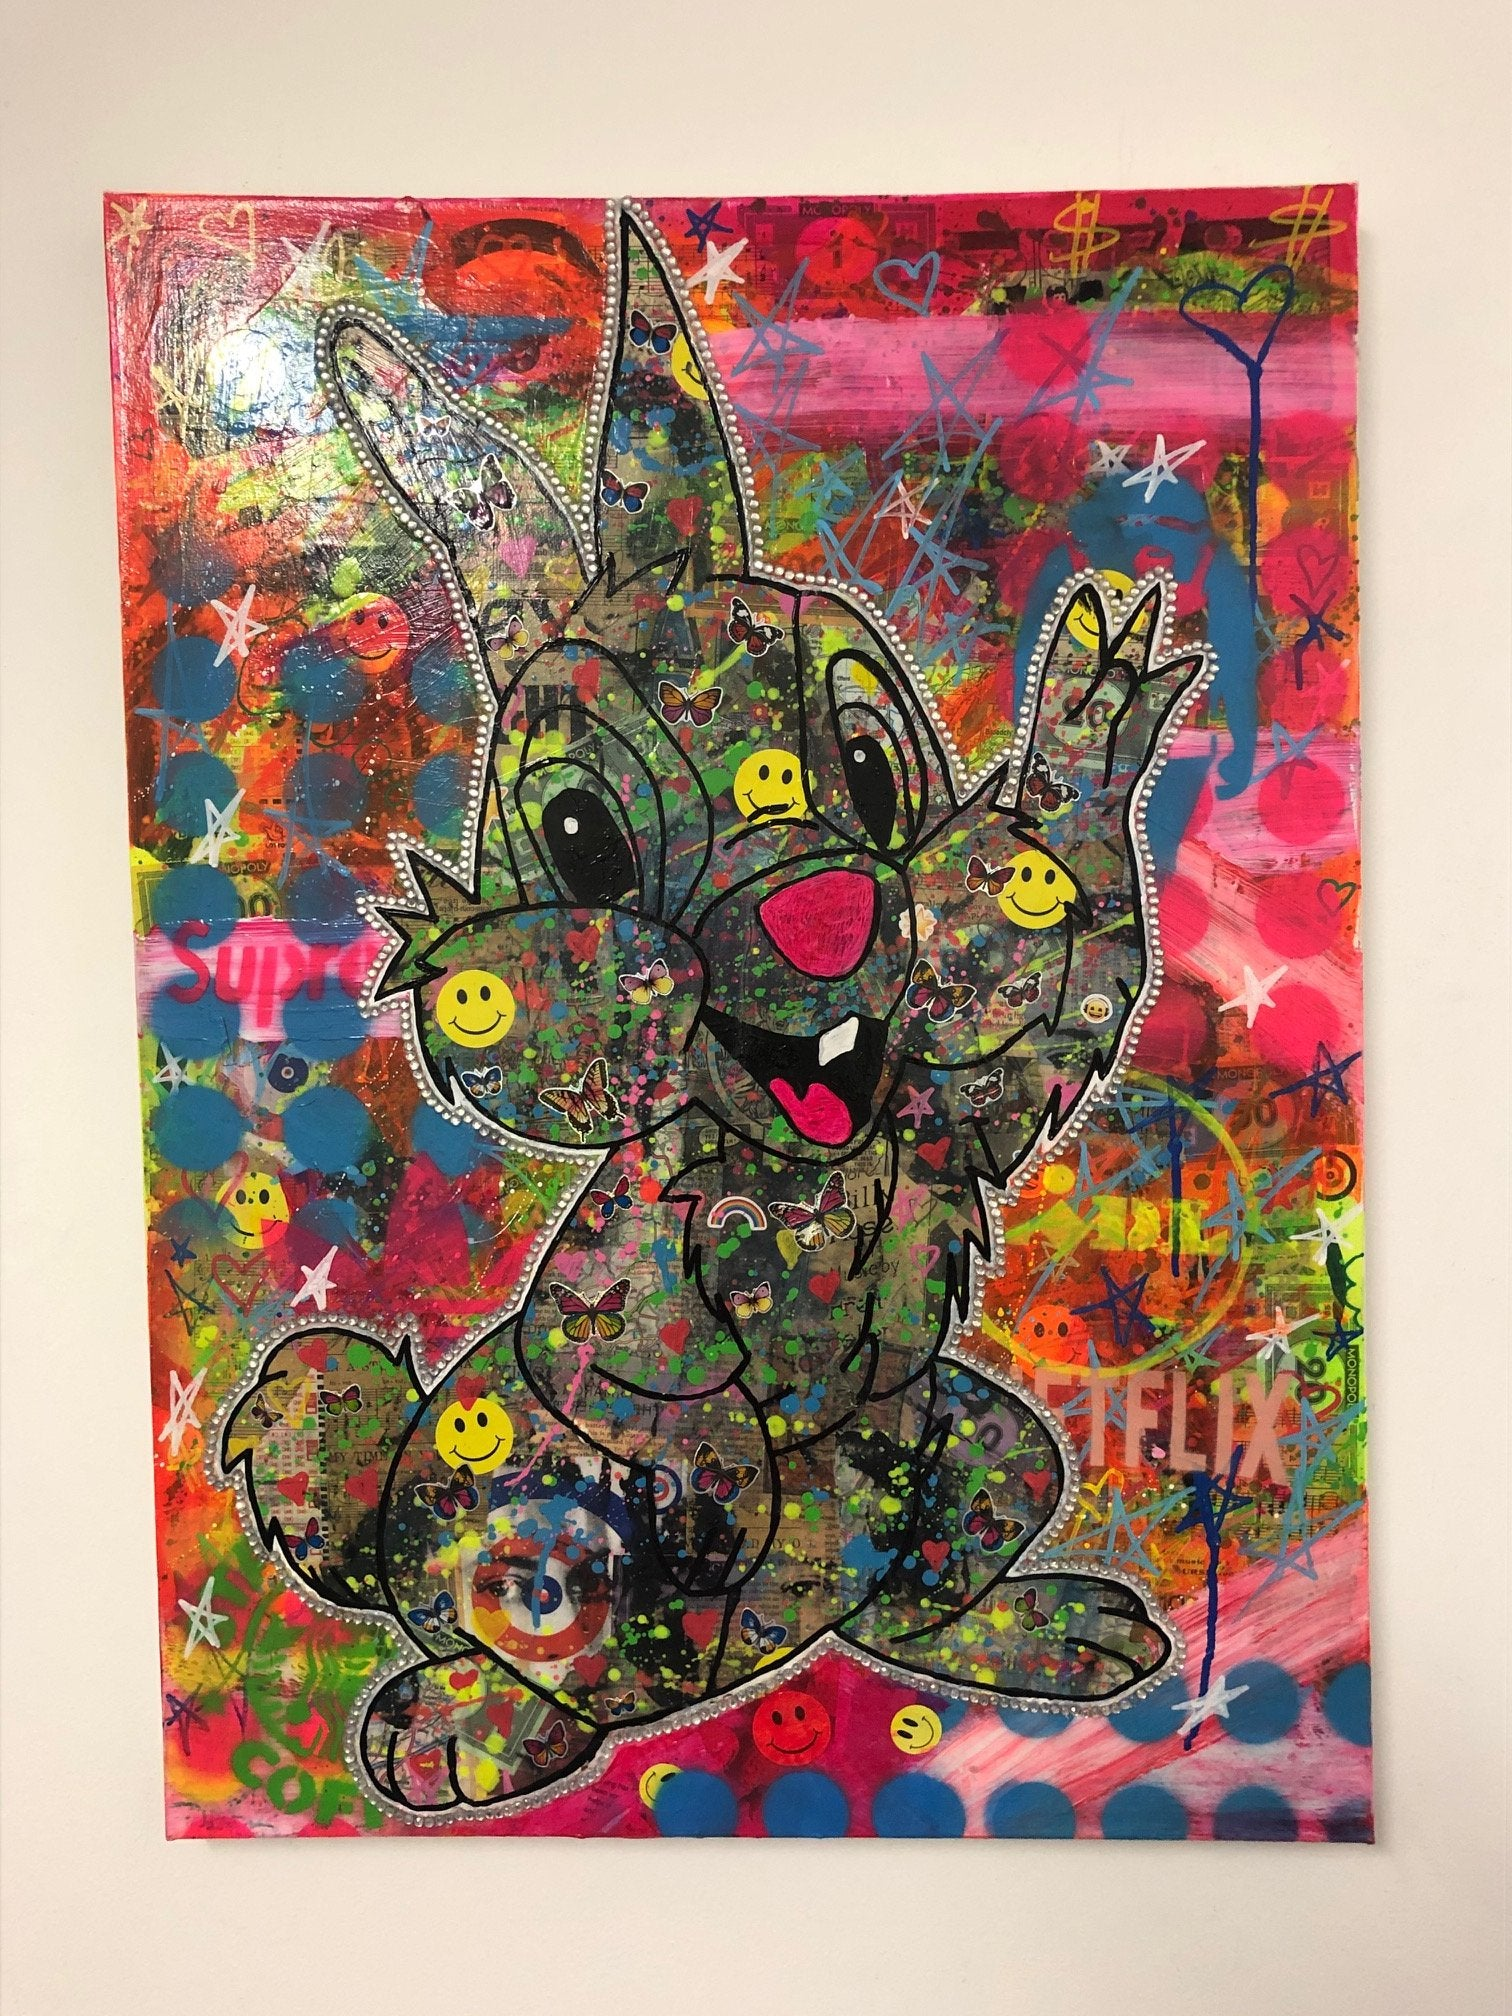 Hey Girl Hey Boy by Barrie J Davies 2020, mixed media on canvas, Unframed, 59cm x 80cm. Barrie J Davies is an Artist - Pop Art and Street art inspired Artist based in Brighton England UK - Pop Art Paintings, Street Art Prints & Editions available